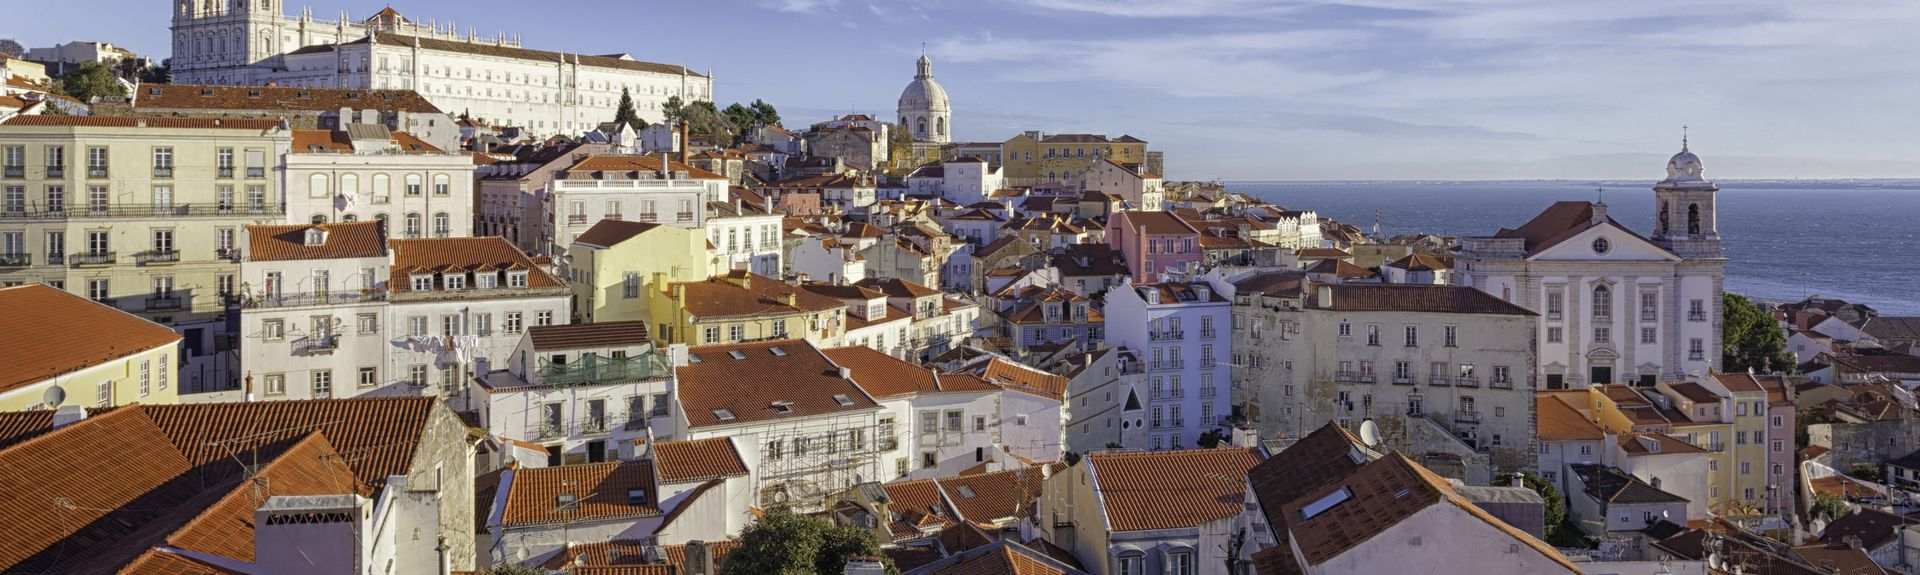 Alfama, Lisbon, Lisbon District, Portugal